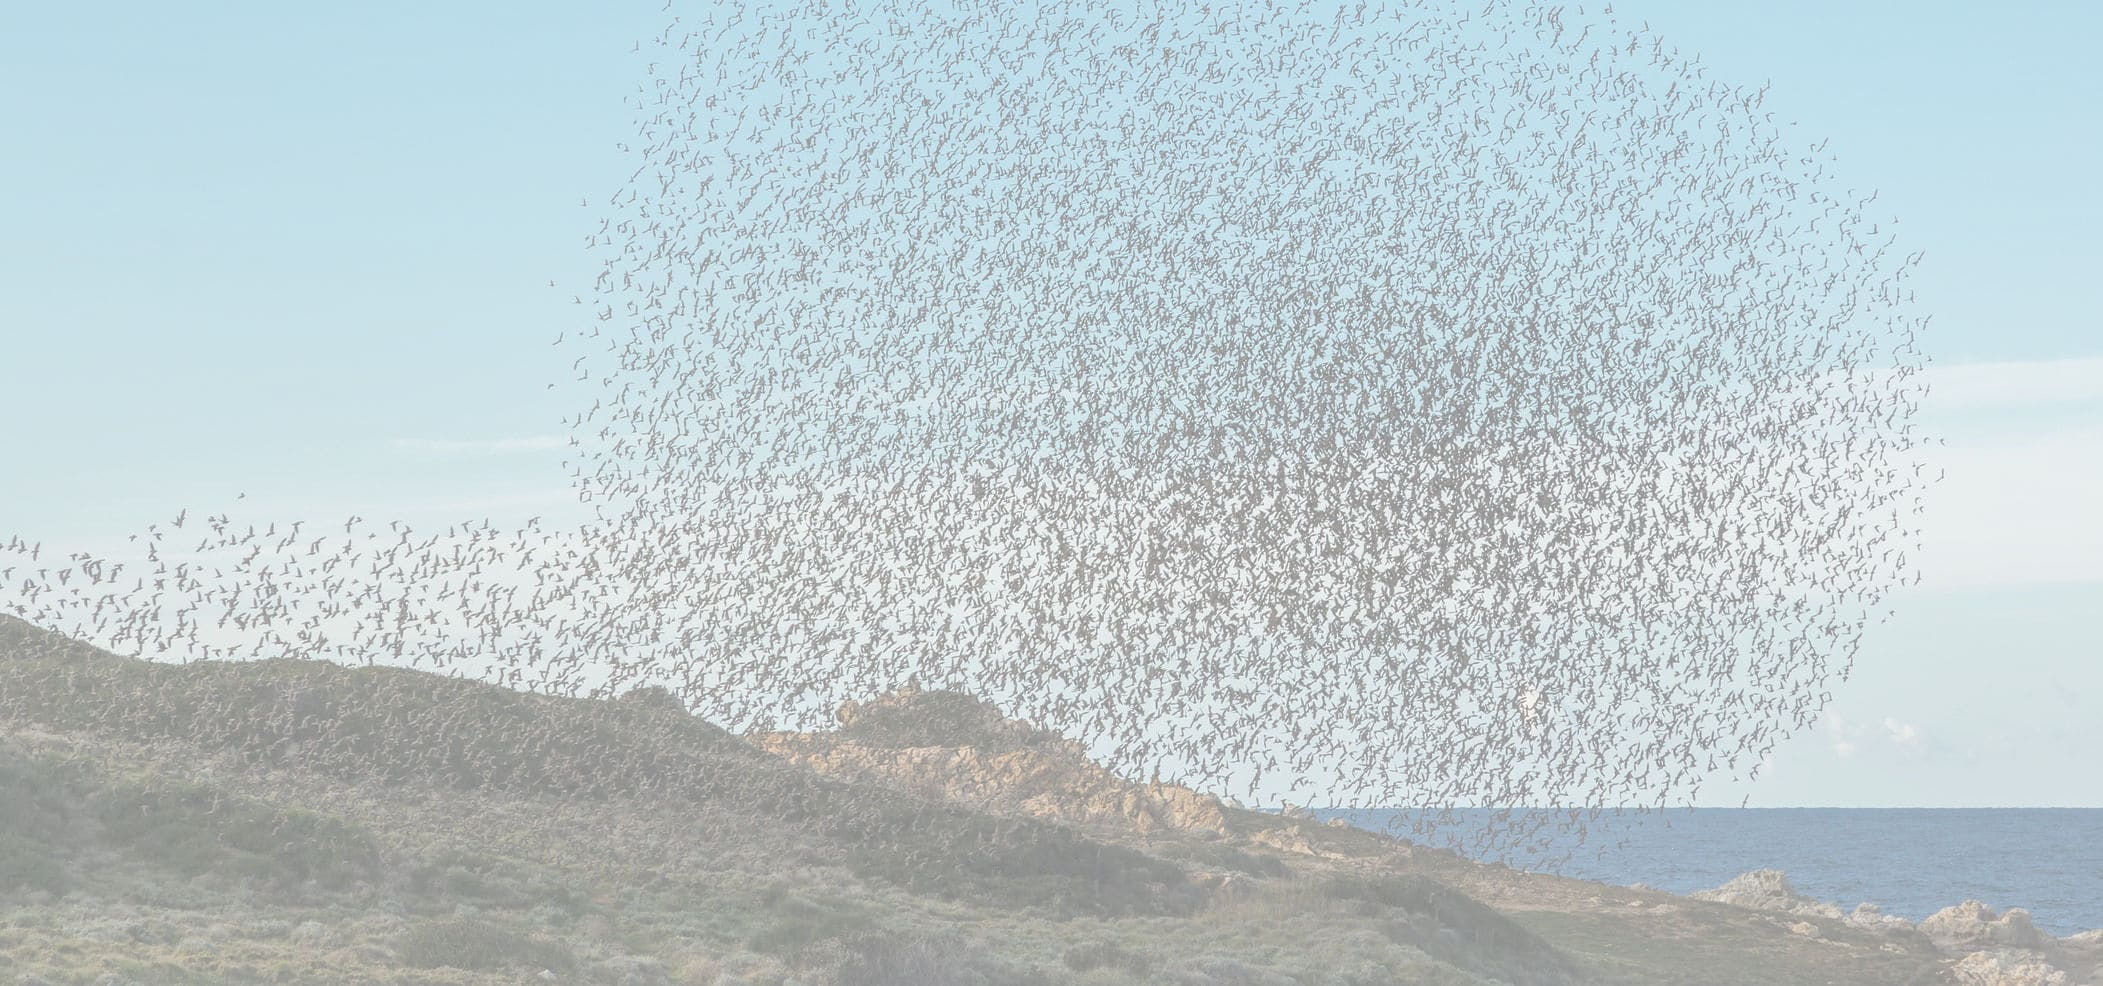 Managing Self-Organizing Teams - murmuration of birds photo